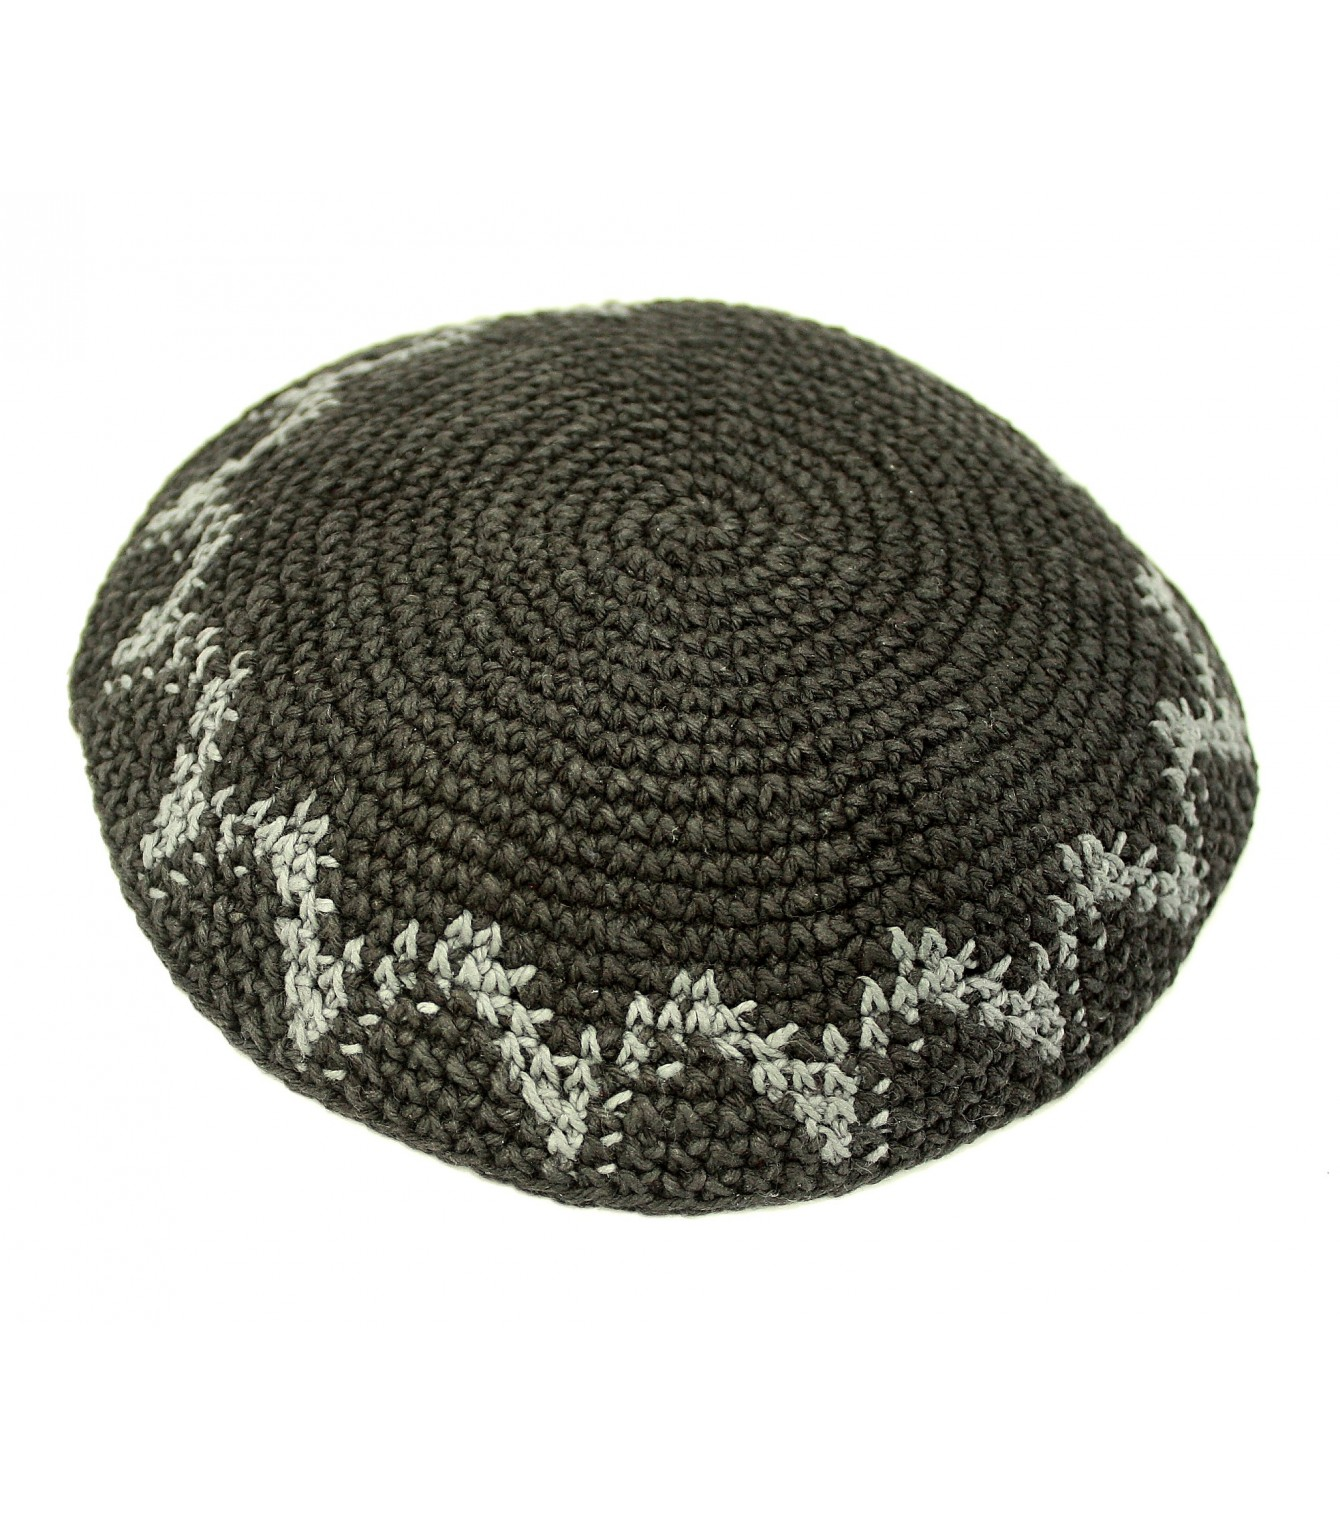 Gray Knitted Kippah with Decorative Design - Israeli-T